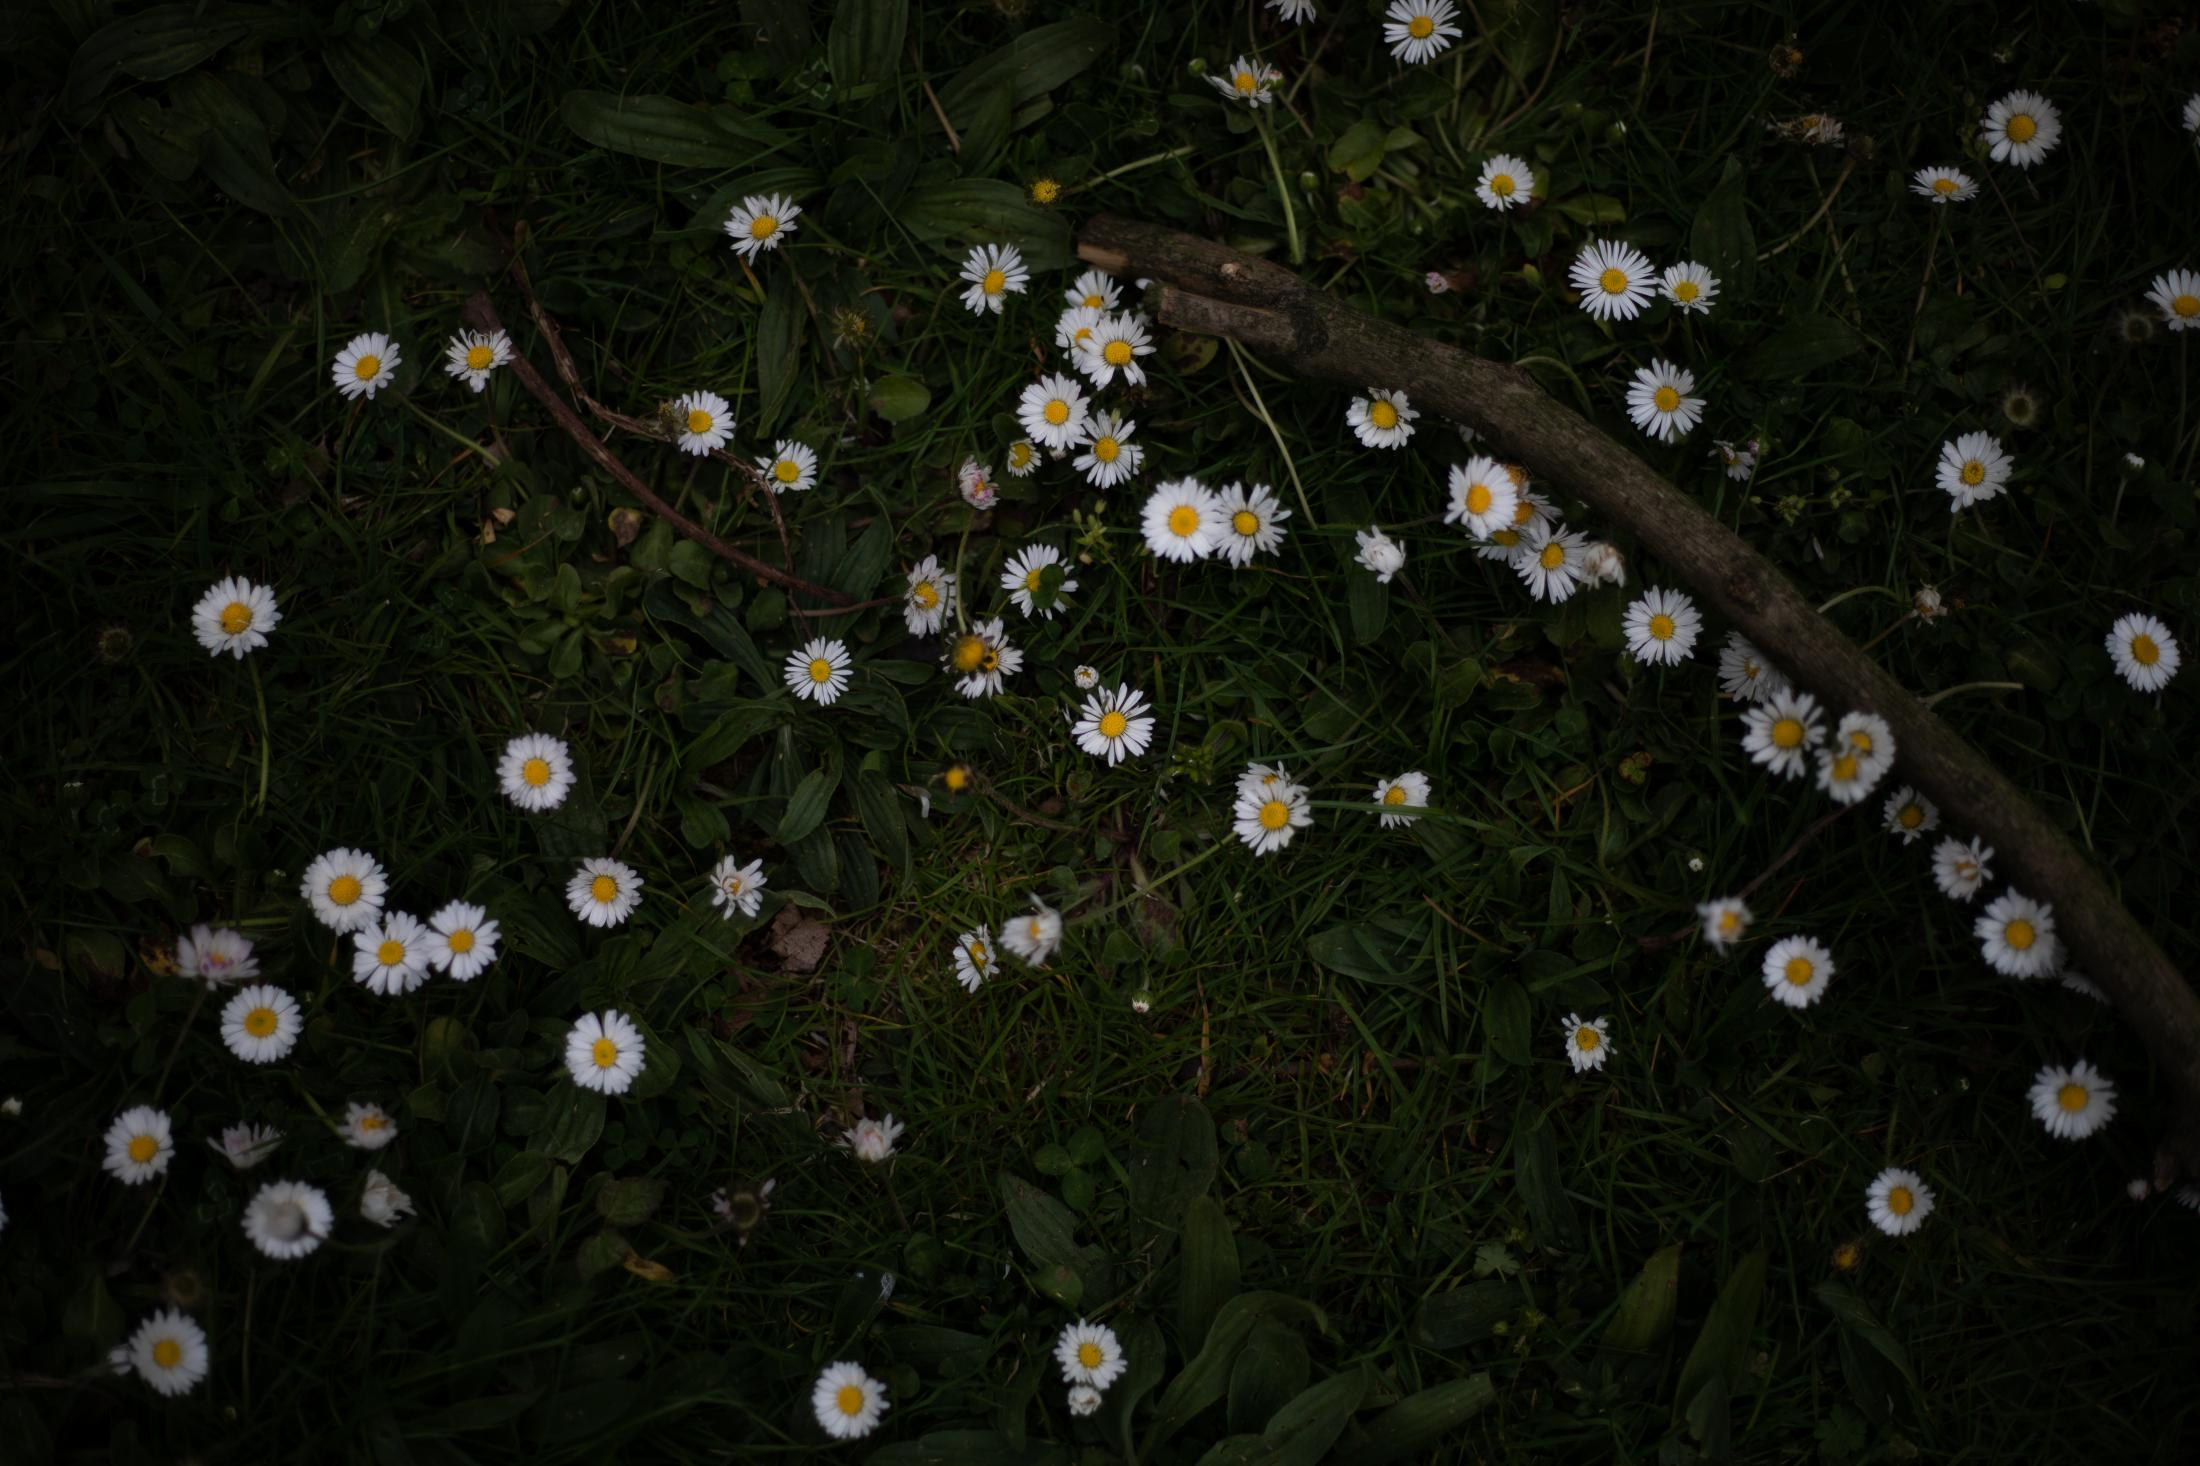 Daisies and branch